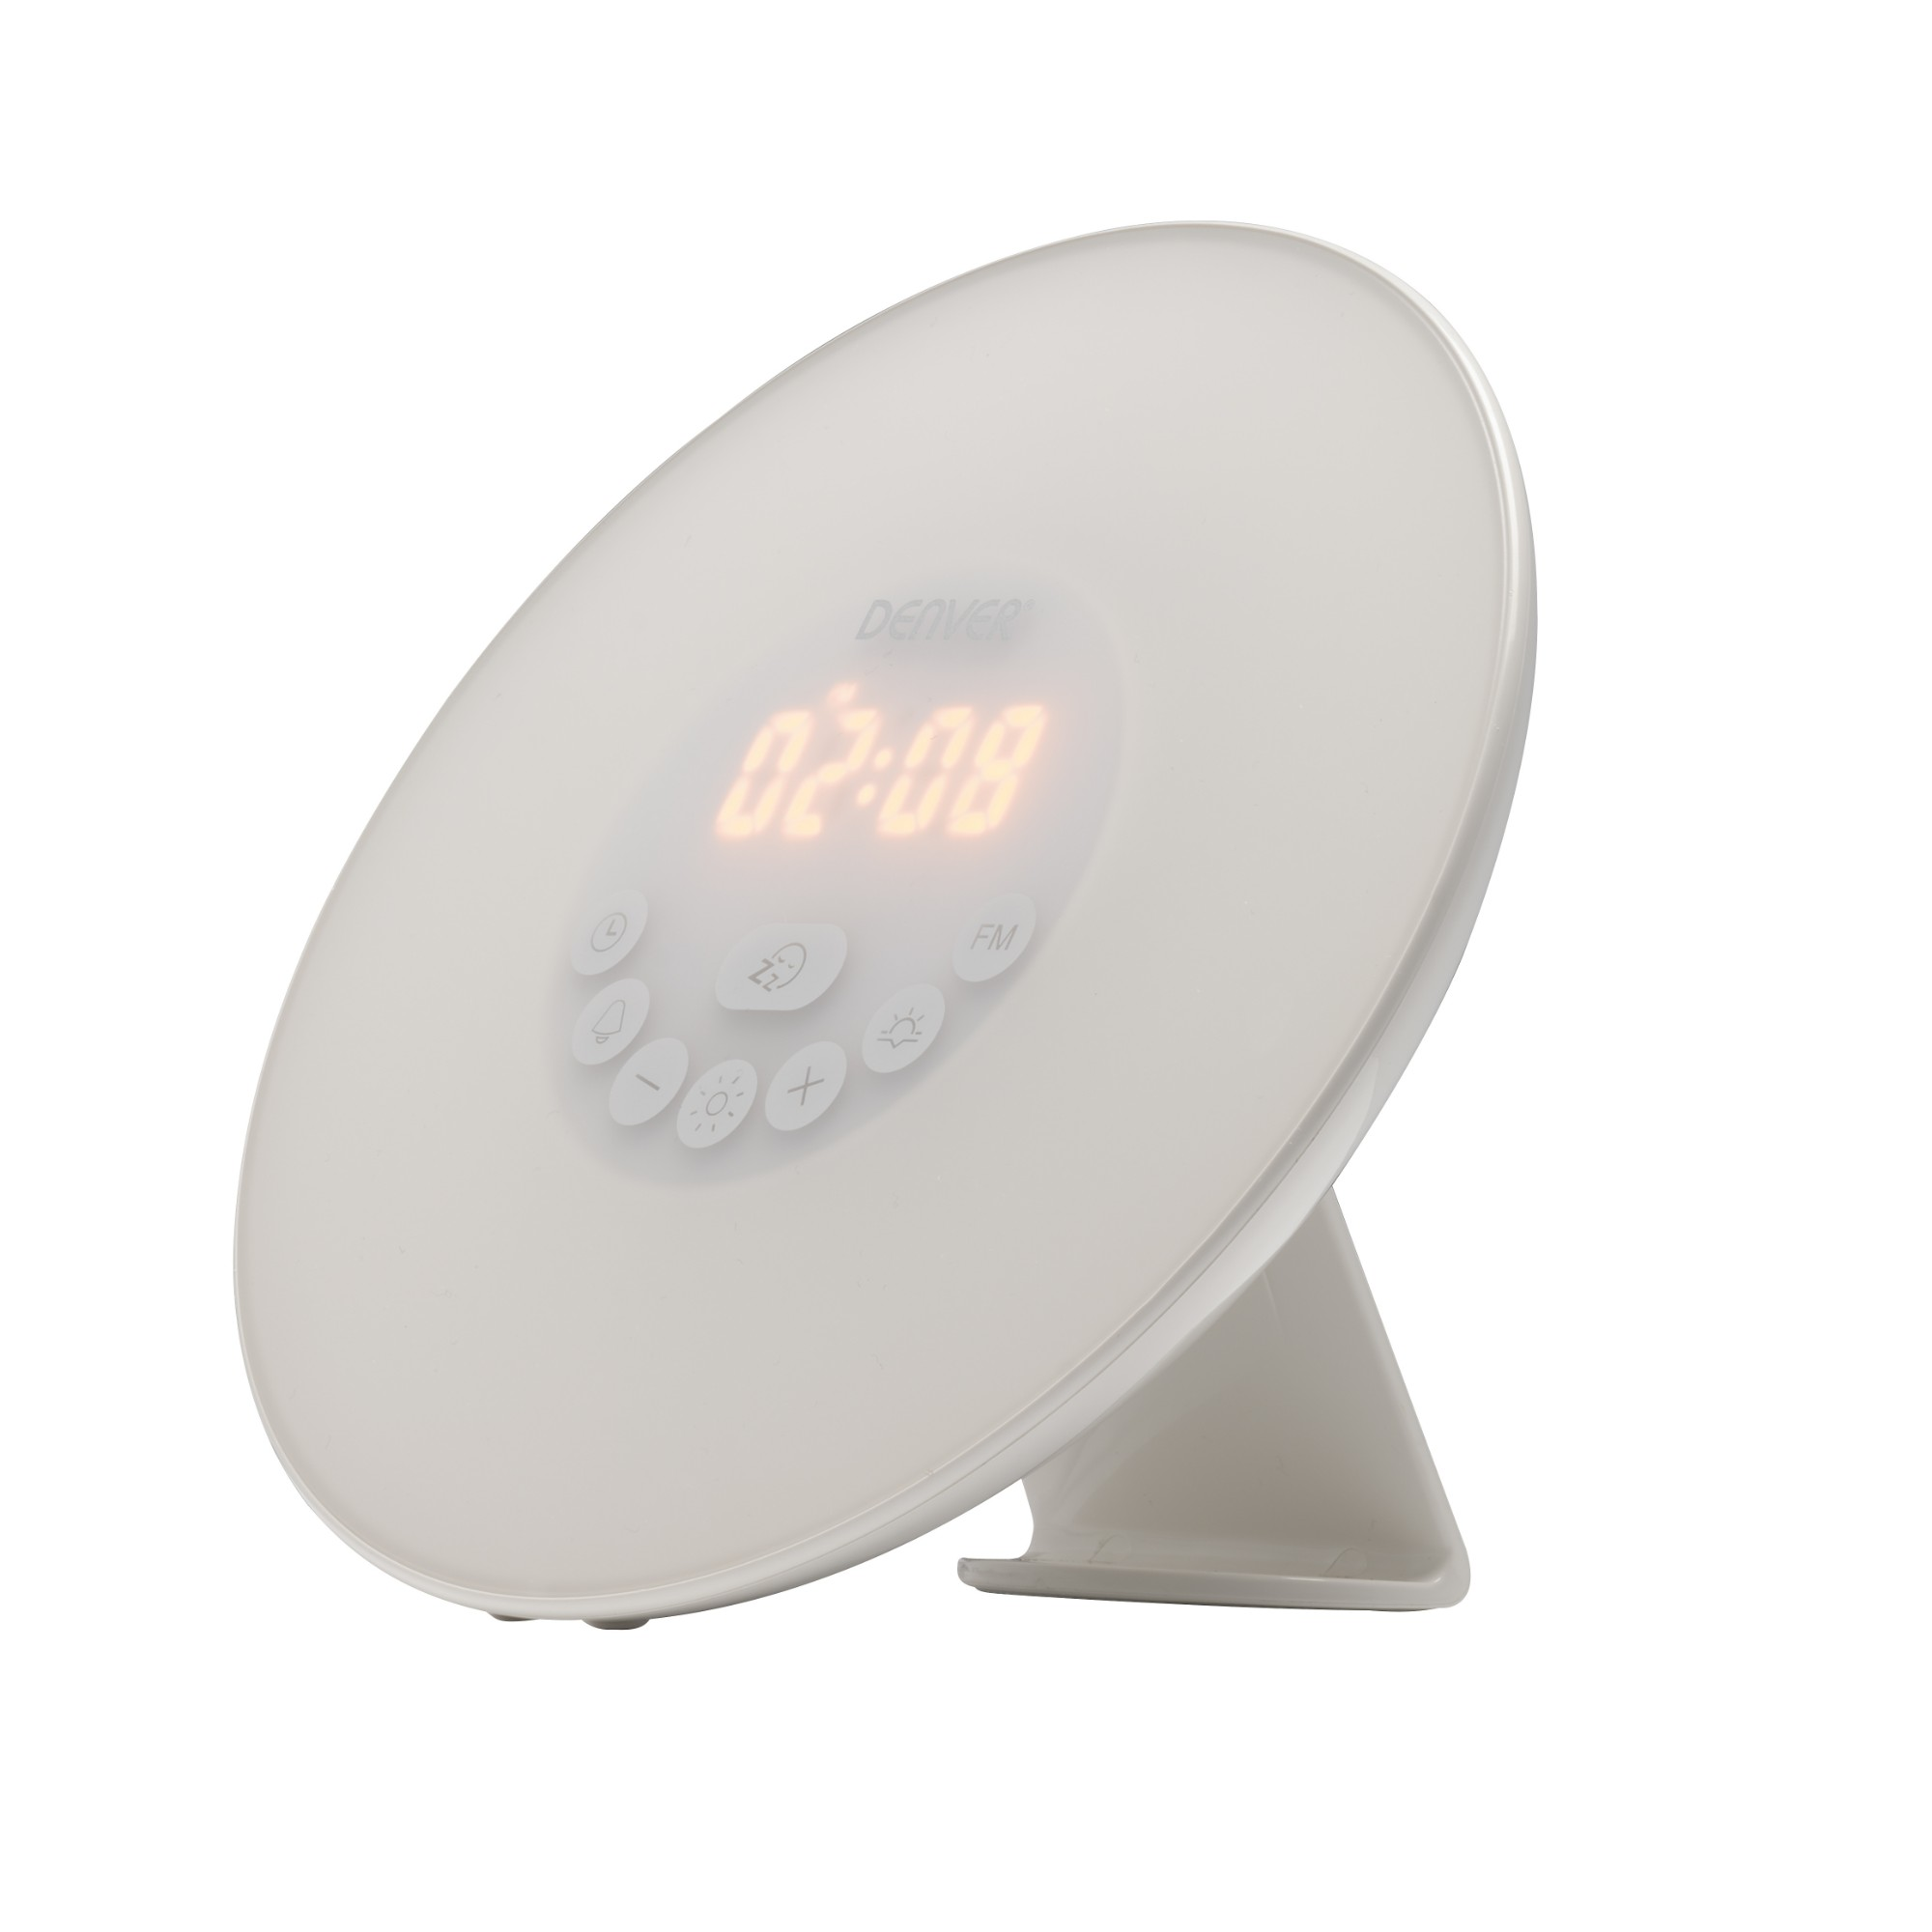 Denver Electronics CRL-330 Clock Digital White radio